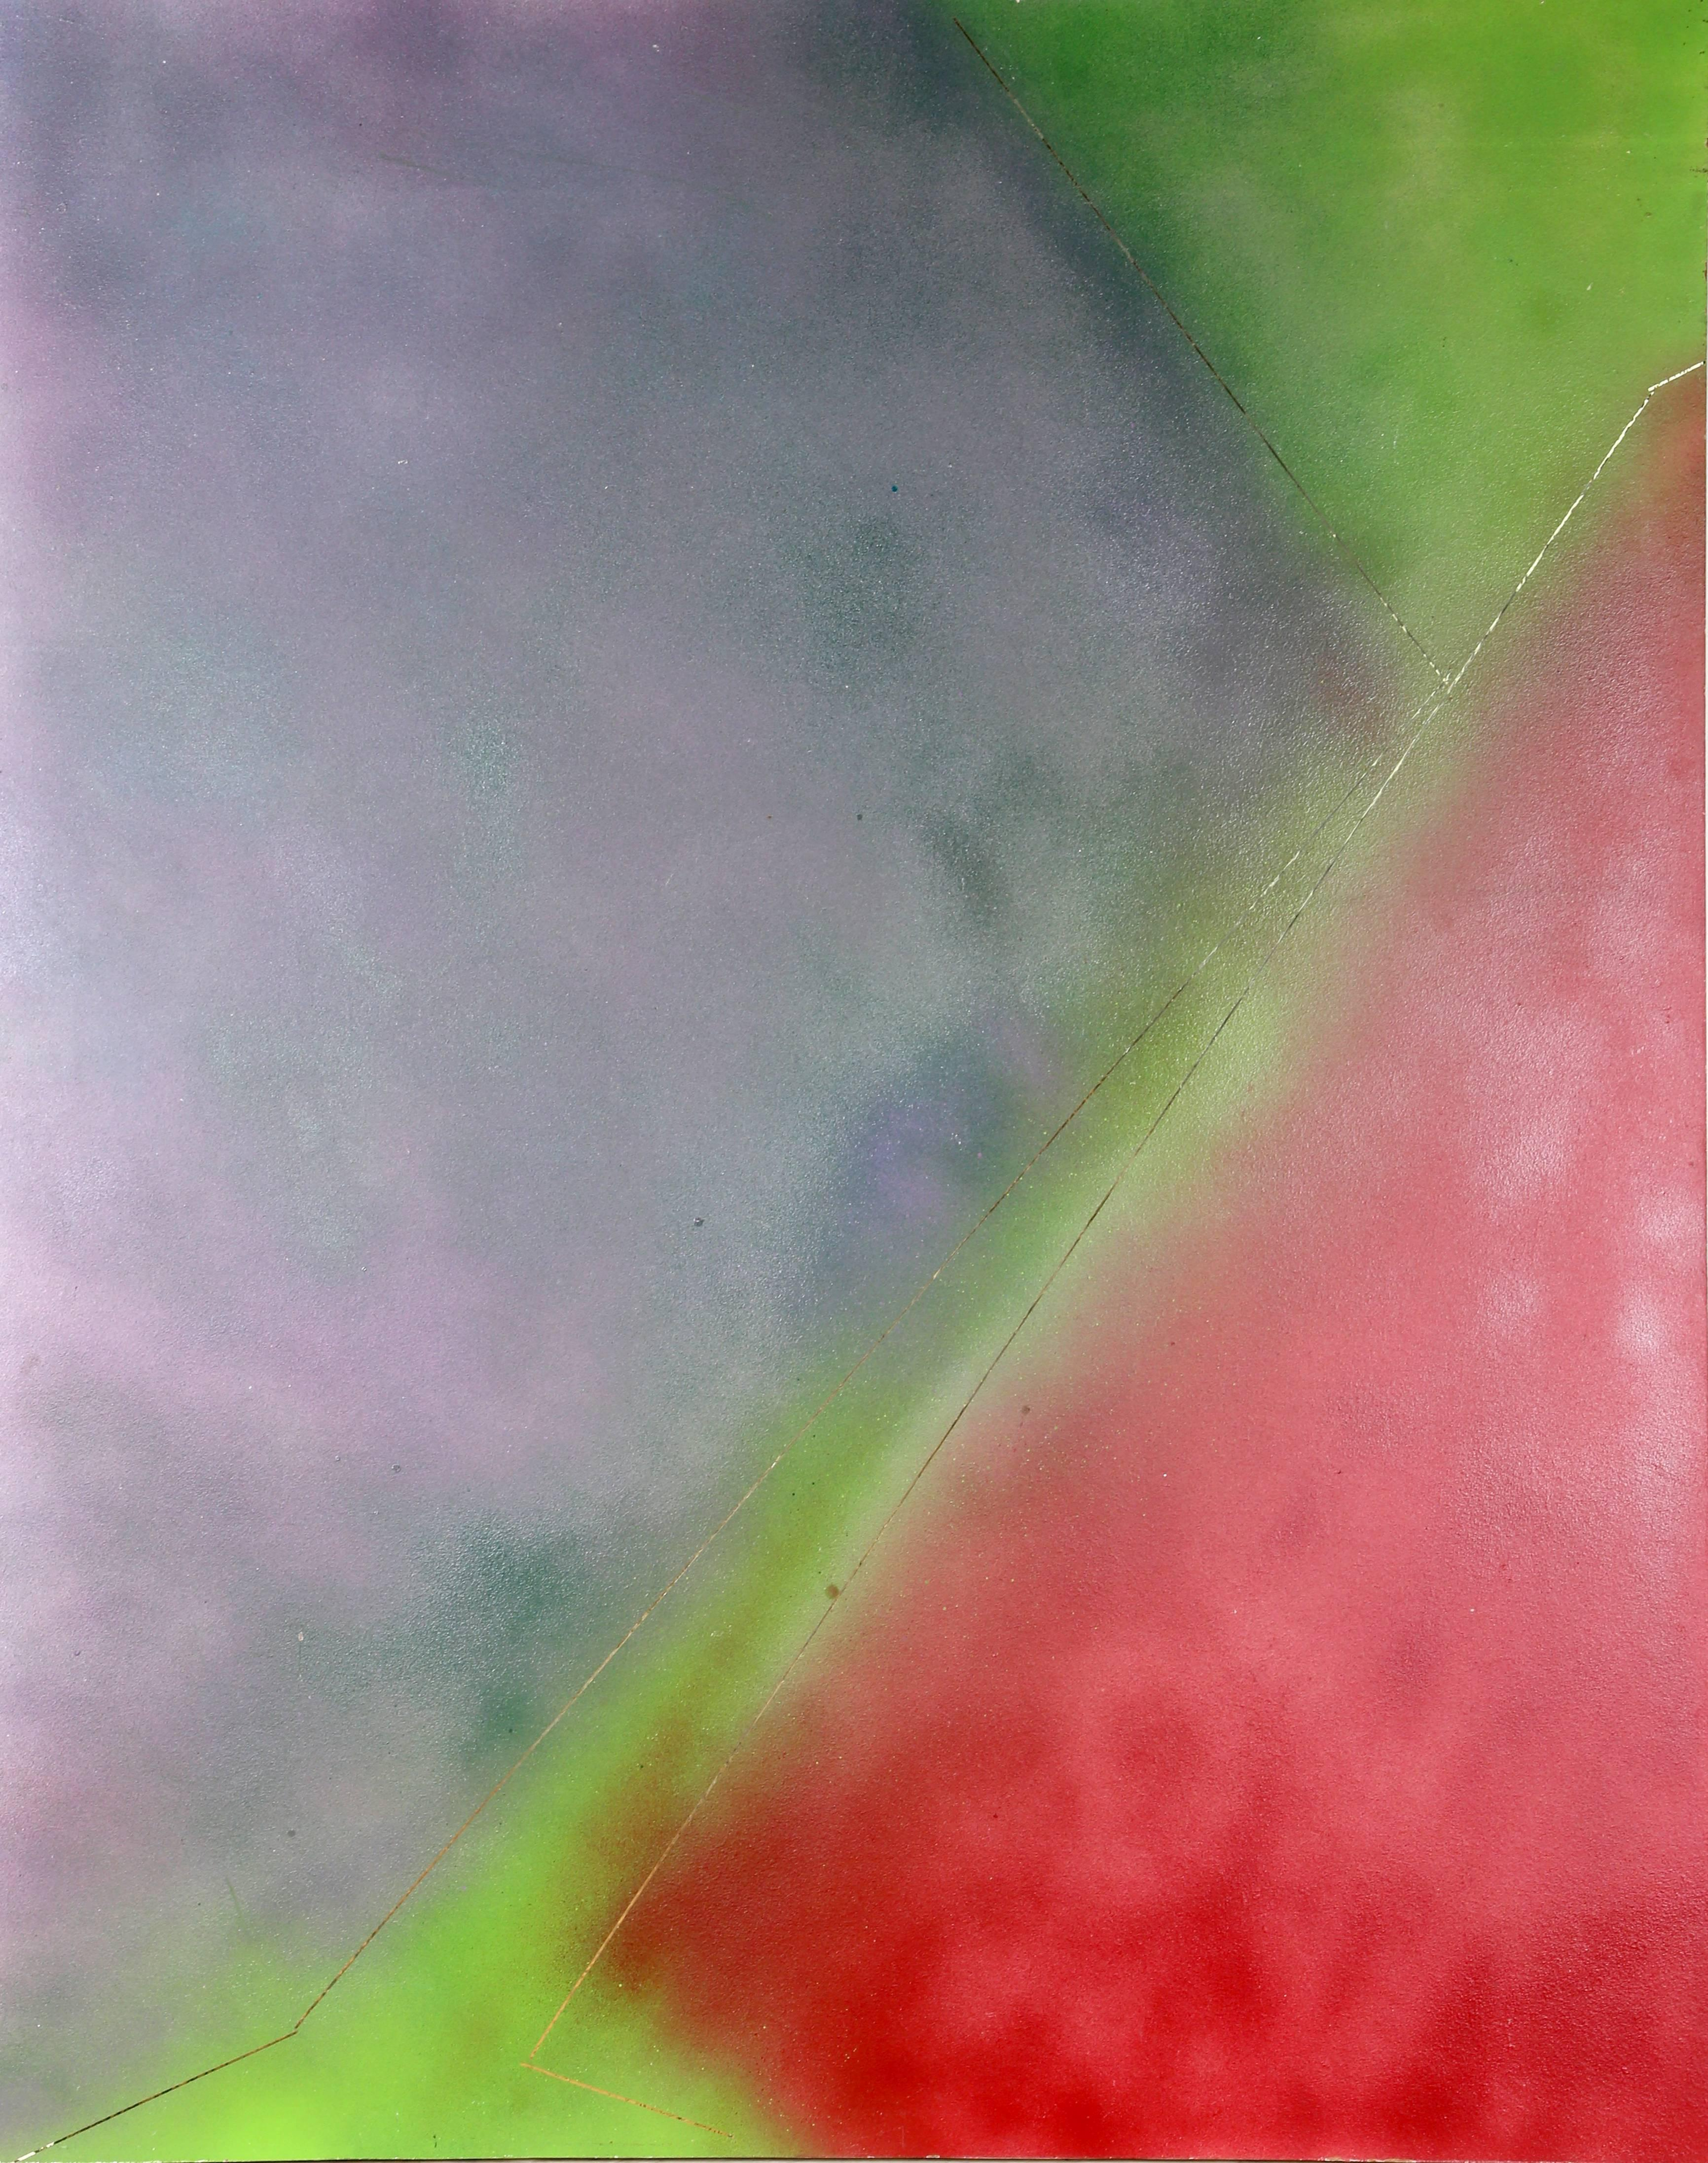 Abstract in Purple, Green and Red